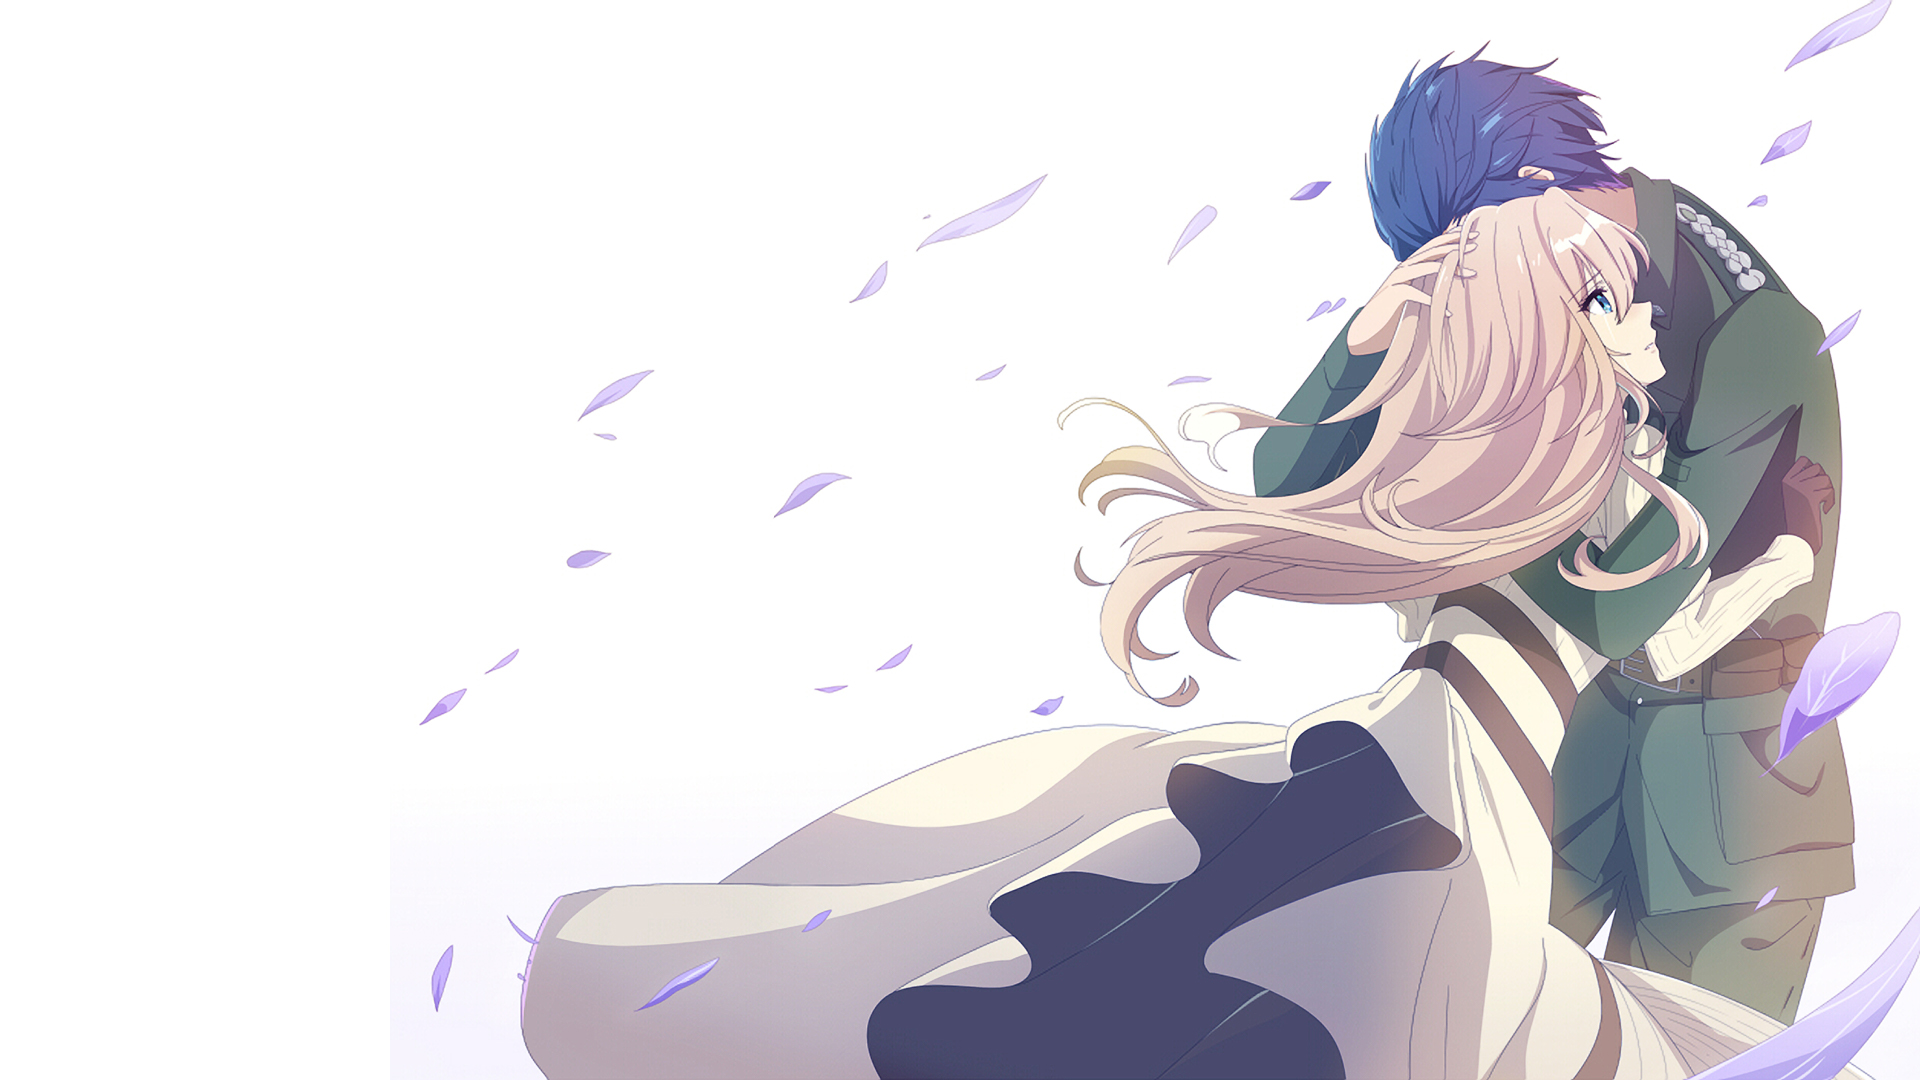 violet evergarden hd wallpaper background image 1920x1080 id